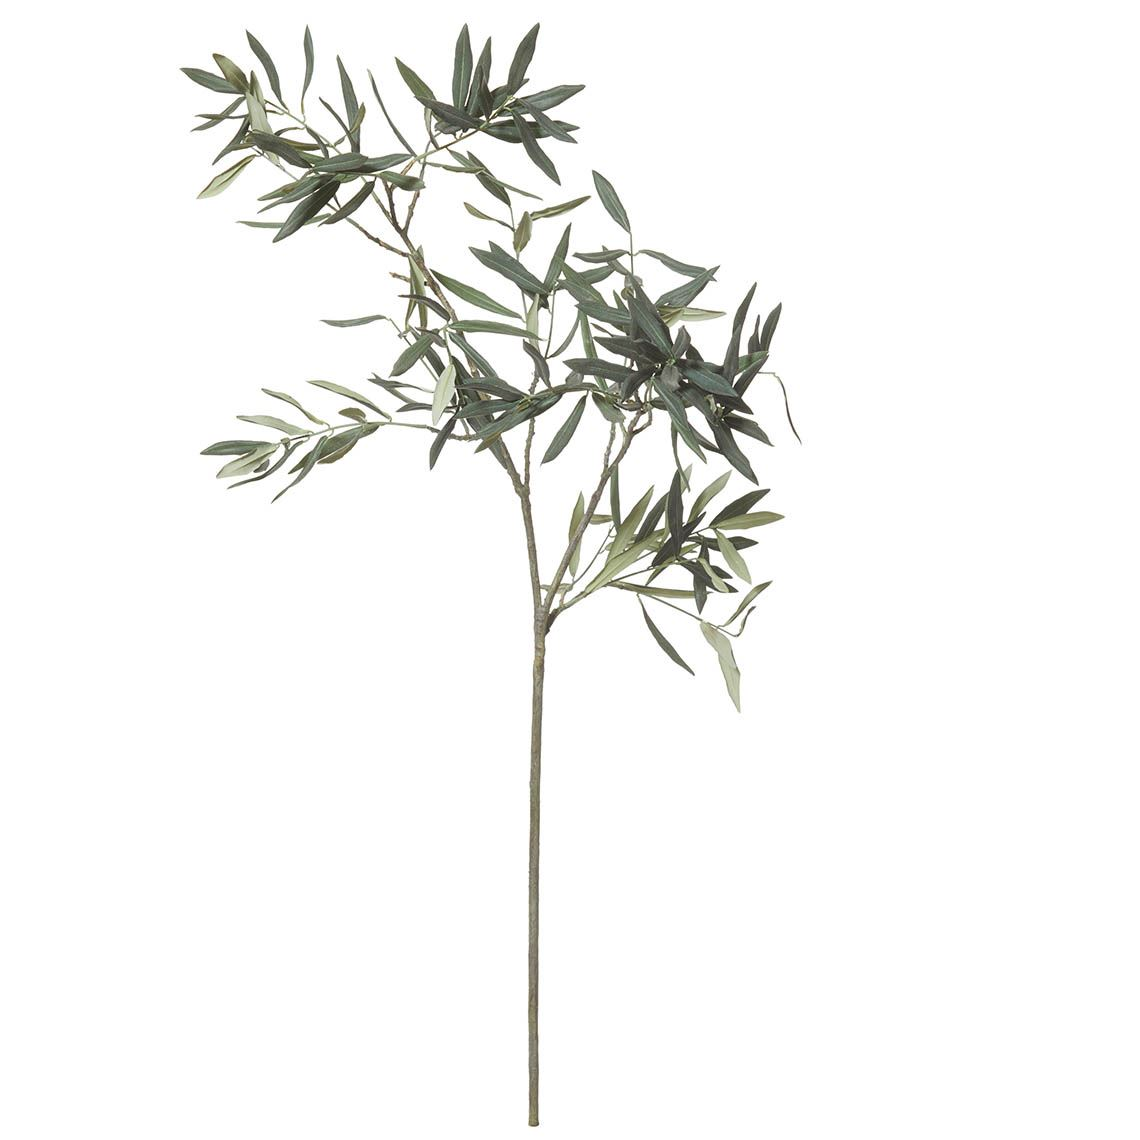 Olive Branch Size W 50cm x D 40cm x H 120cm in Green Plastic/Wire Freedom by Freedom, a Plants for sale on Style Sourcebook